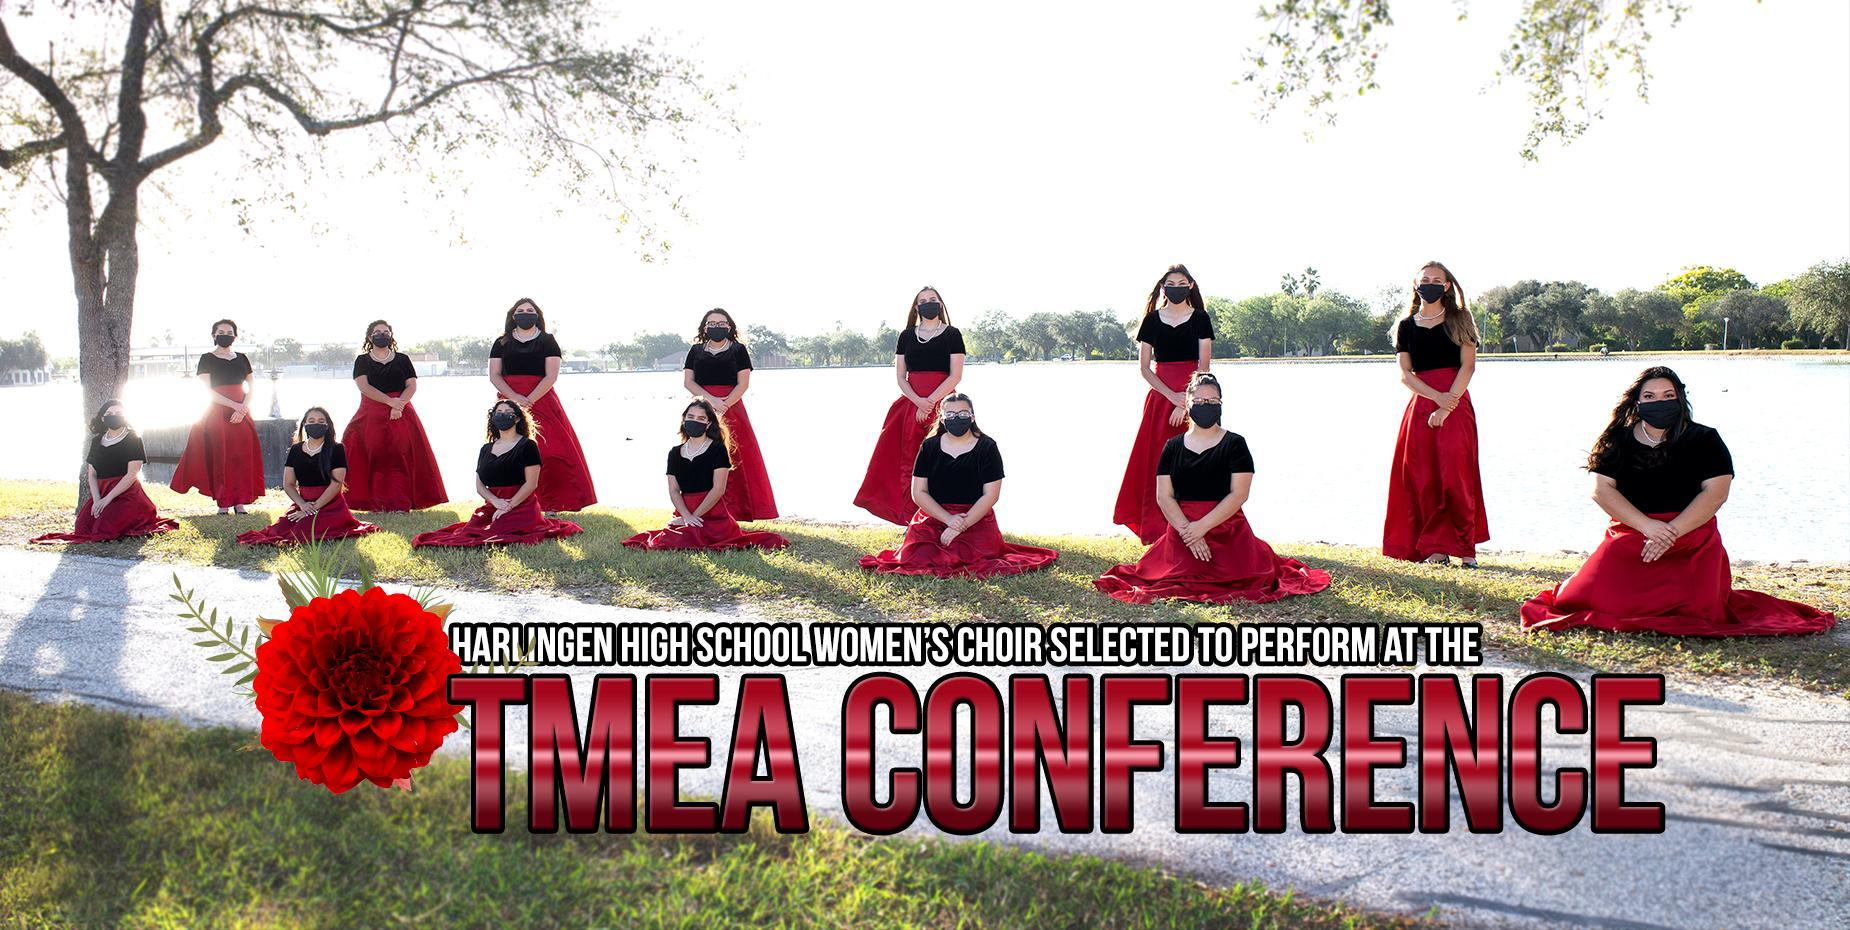 Harlingen High School Women's Choir selected to perform at the TMEA Conference